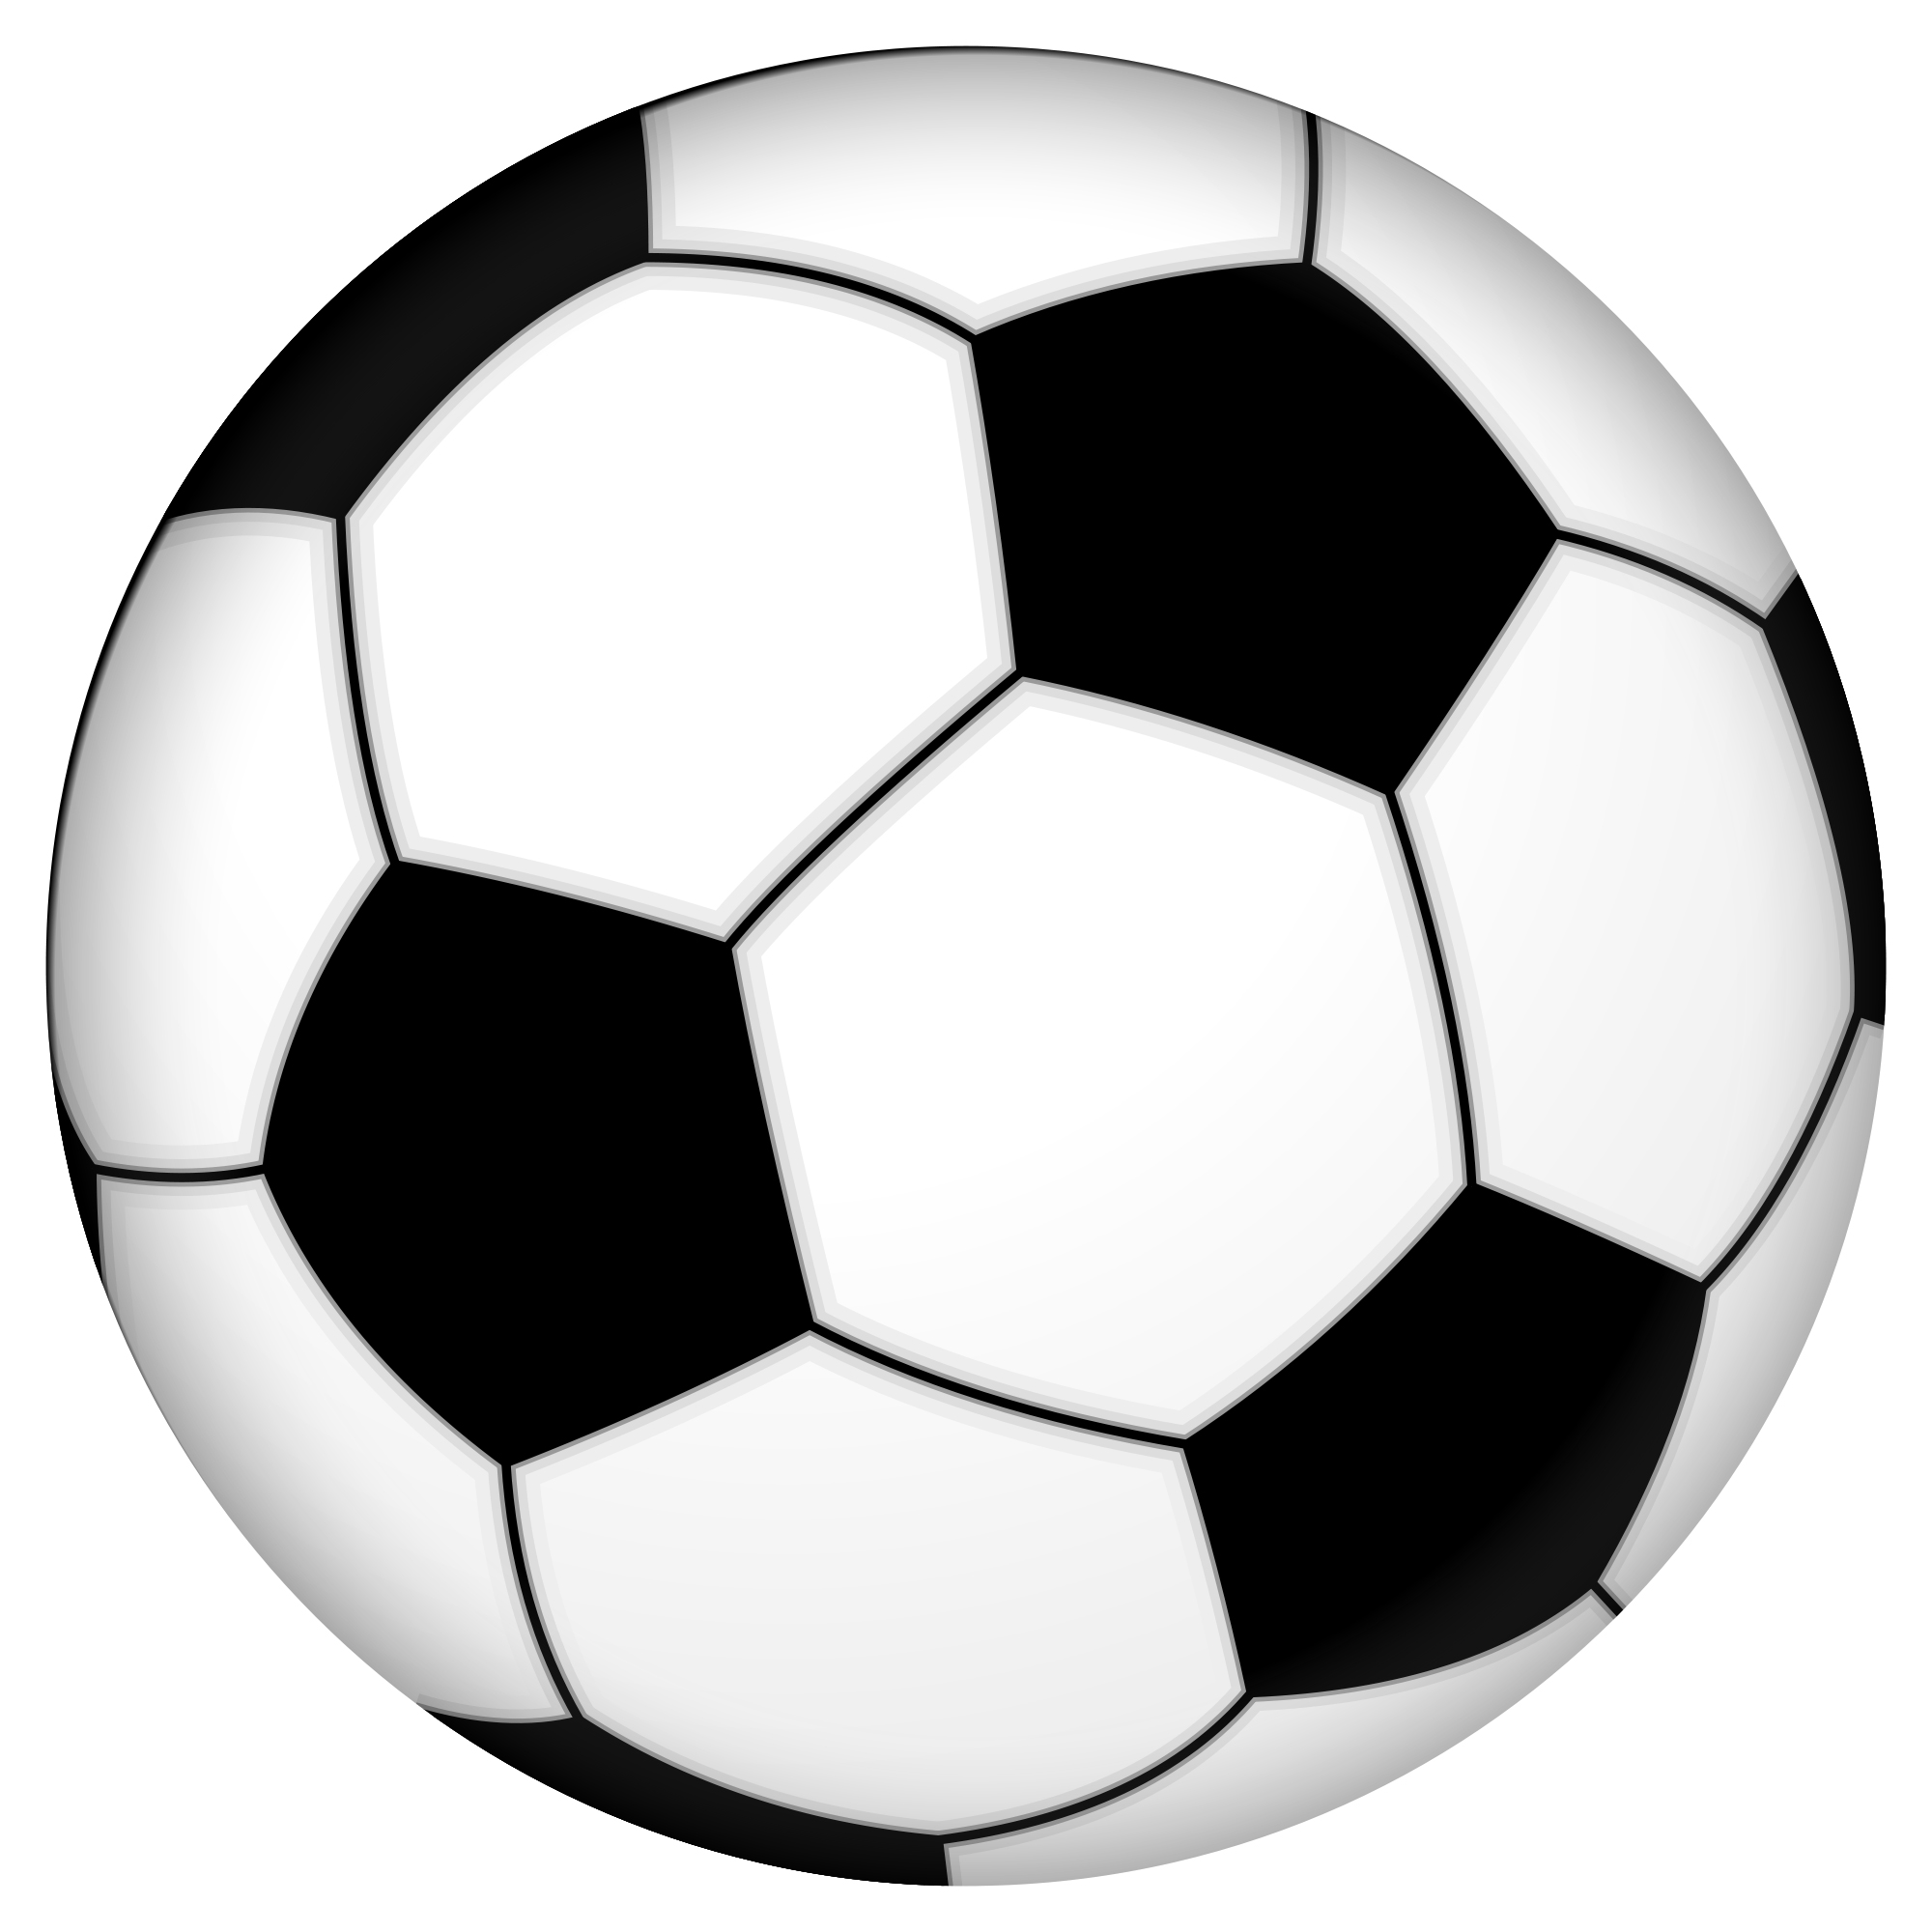 2000x2000 Soccer Ball Clip Art Black And White Free